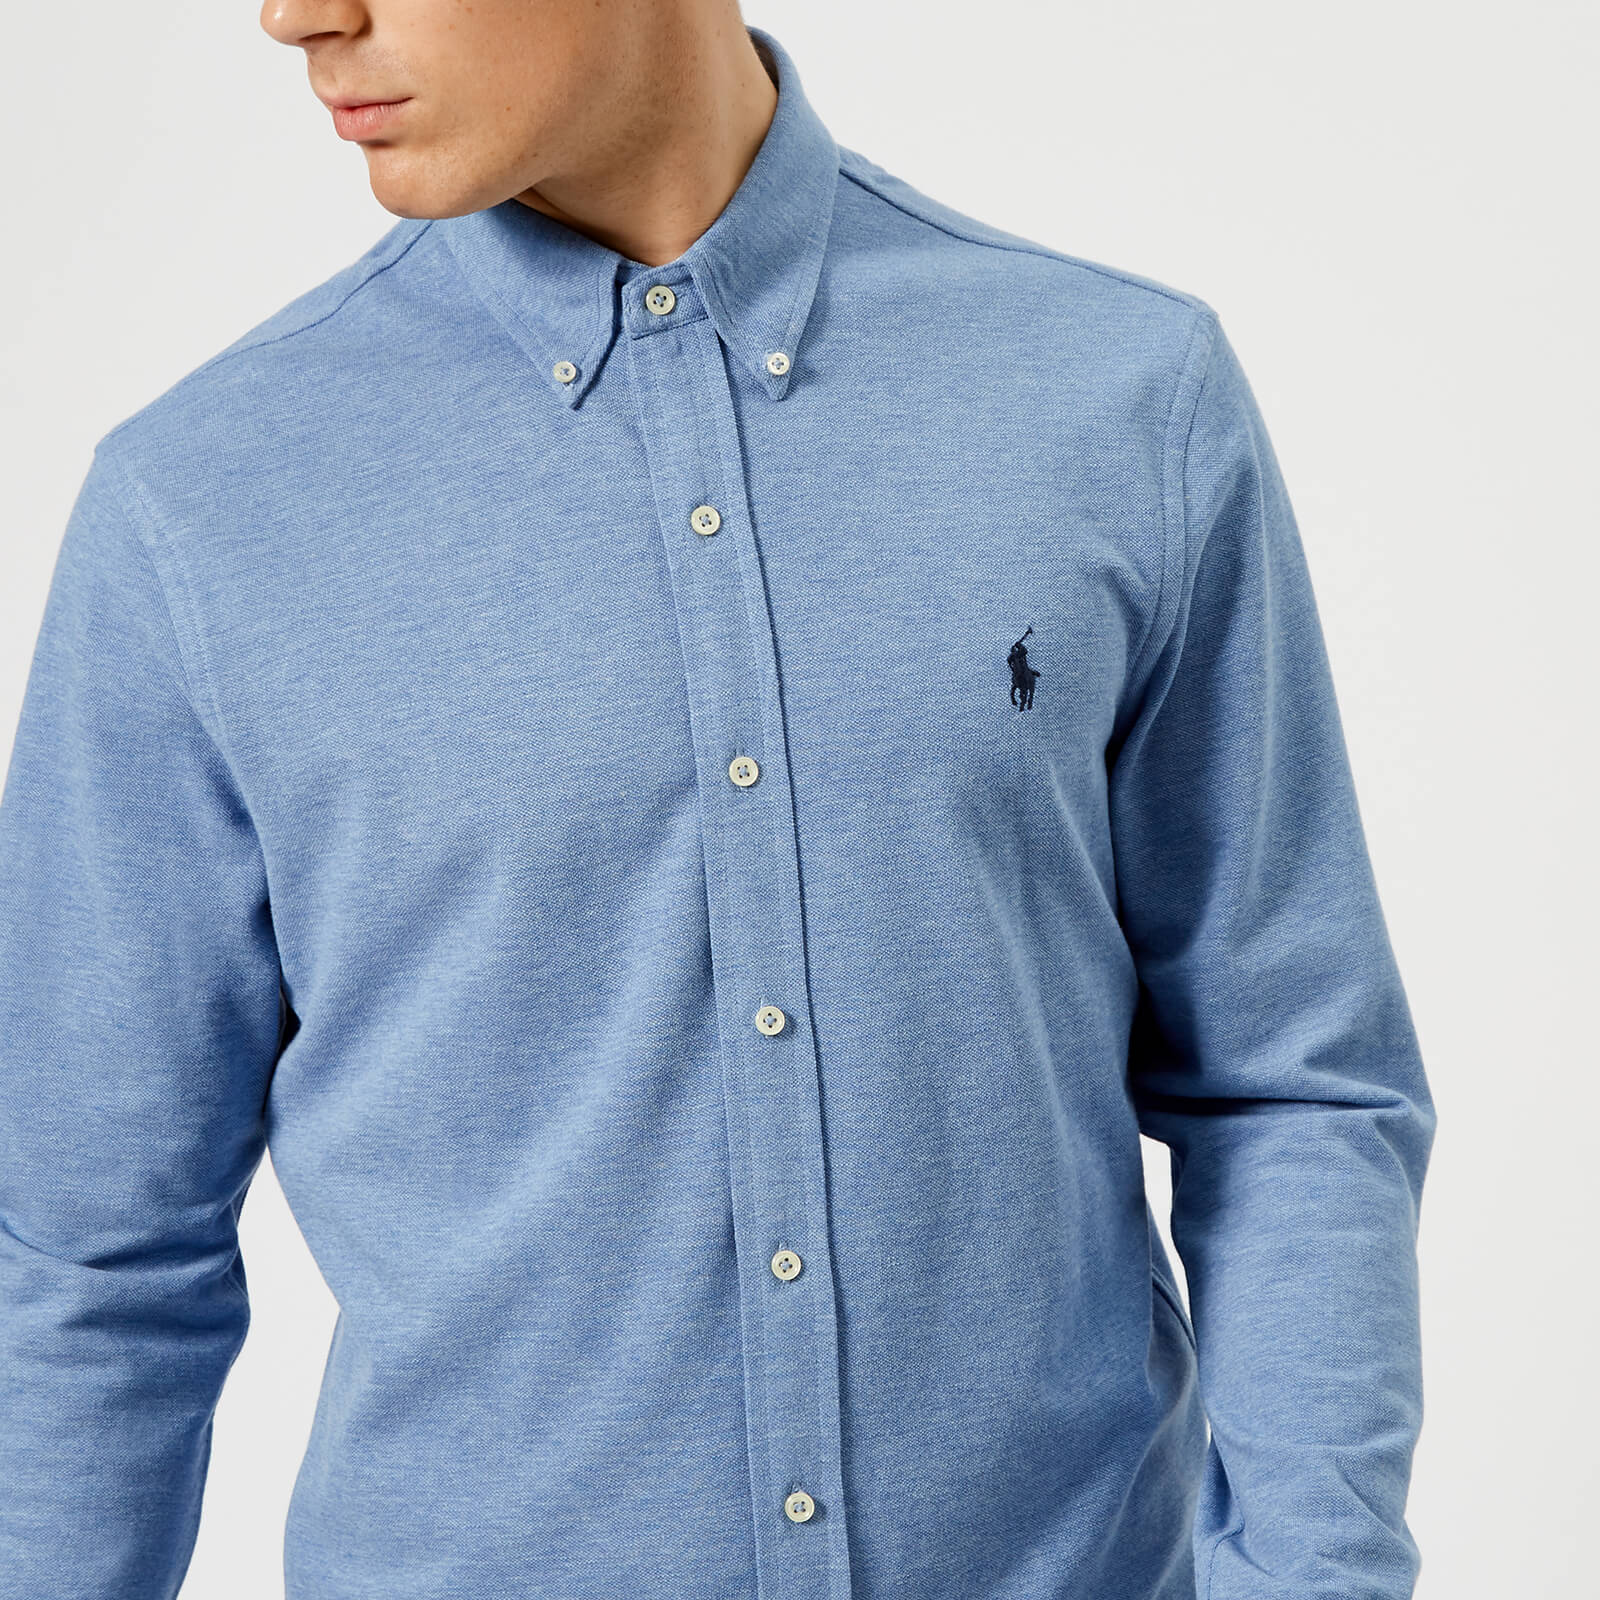 b18680b88b5ba Polo Ralph Lauren Men's Featherweight Long Sleeve Shirt - Blue Heather -  Free UK Delivery over £50